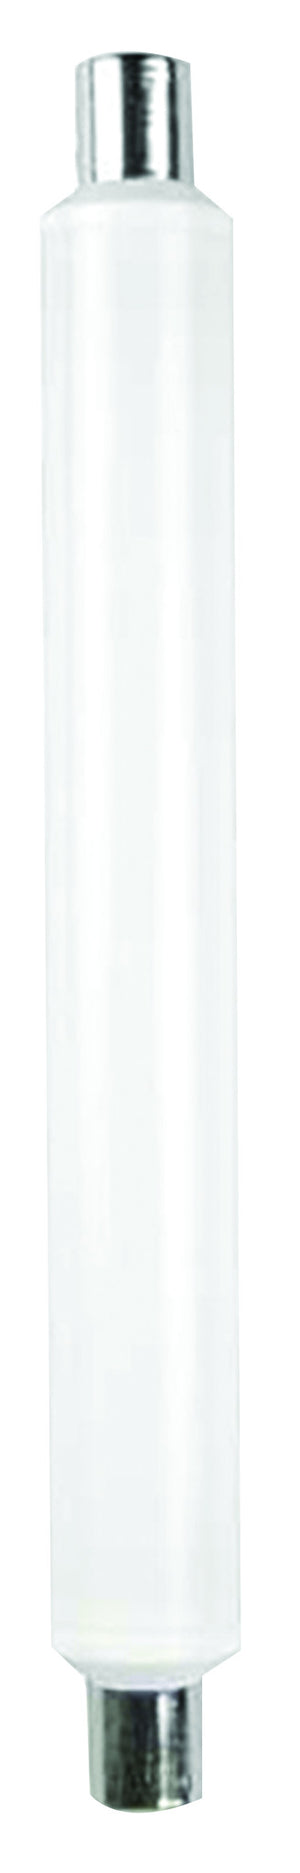 997103 - Tube Linolite LED S15 221mm 3,5W 2700K 320Lm